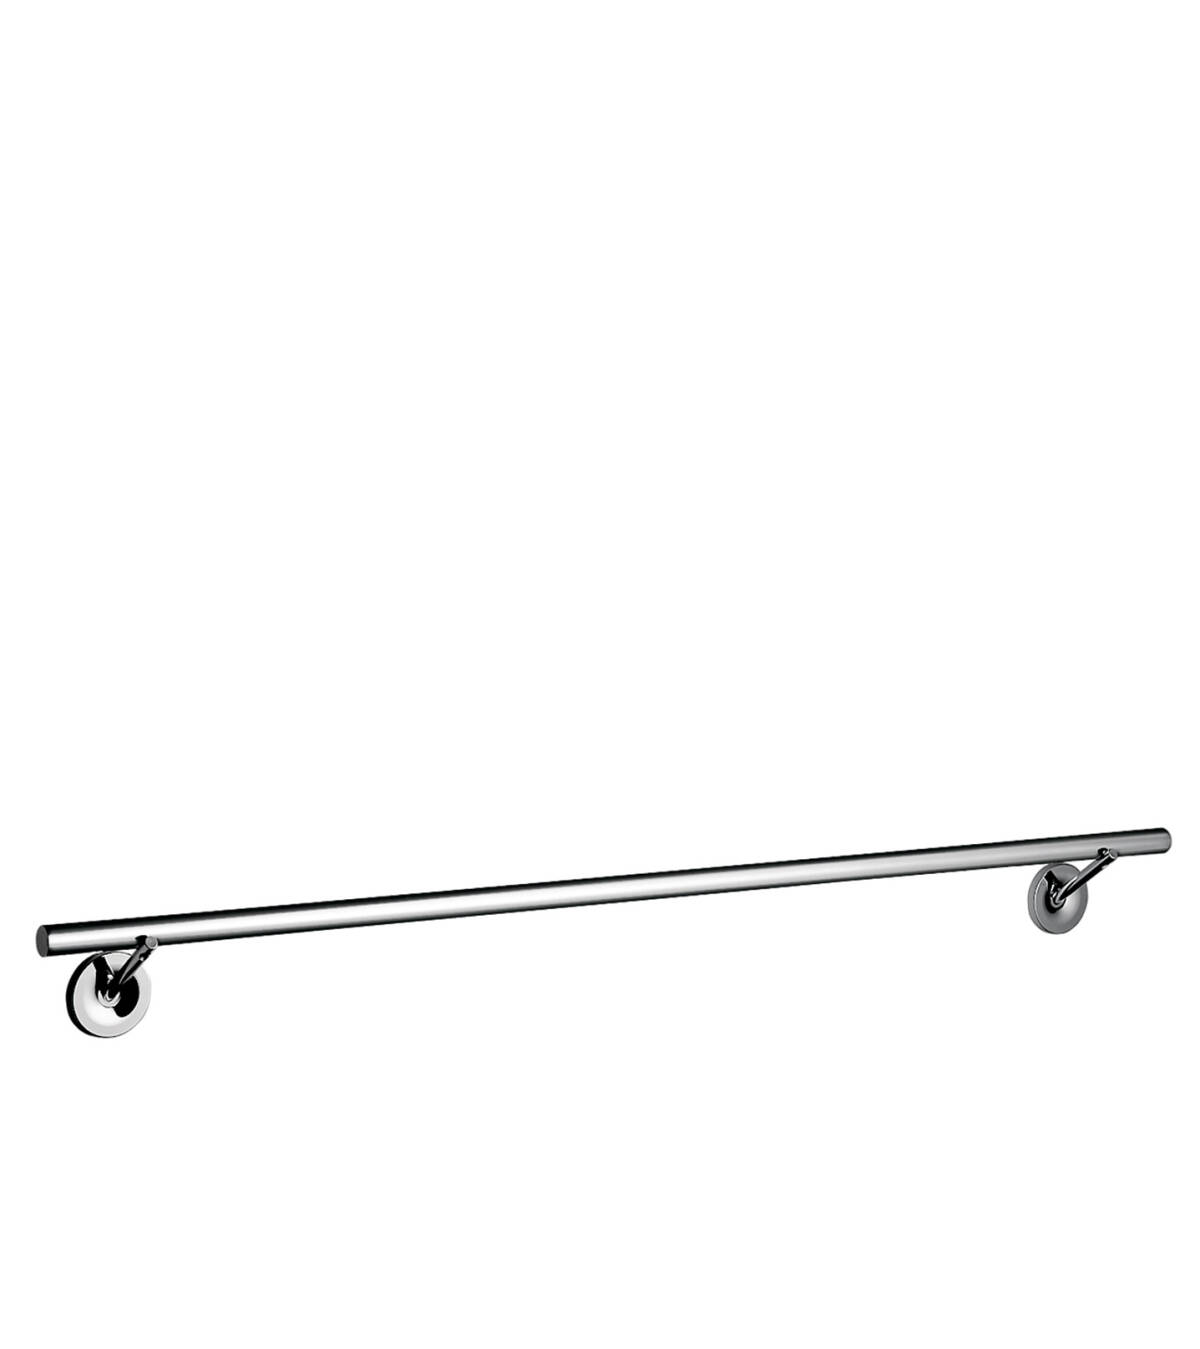 Bath towel rail 800 mm, Chrome, 40808000